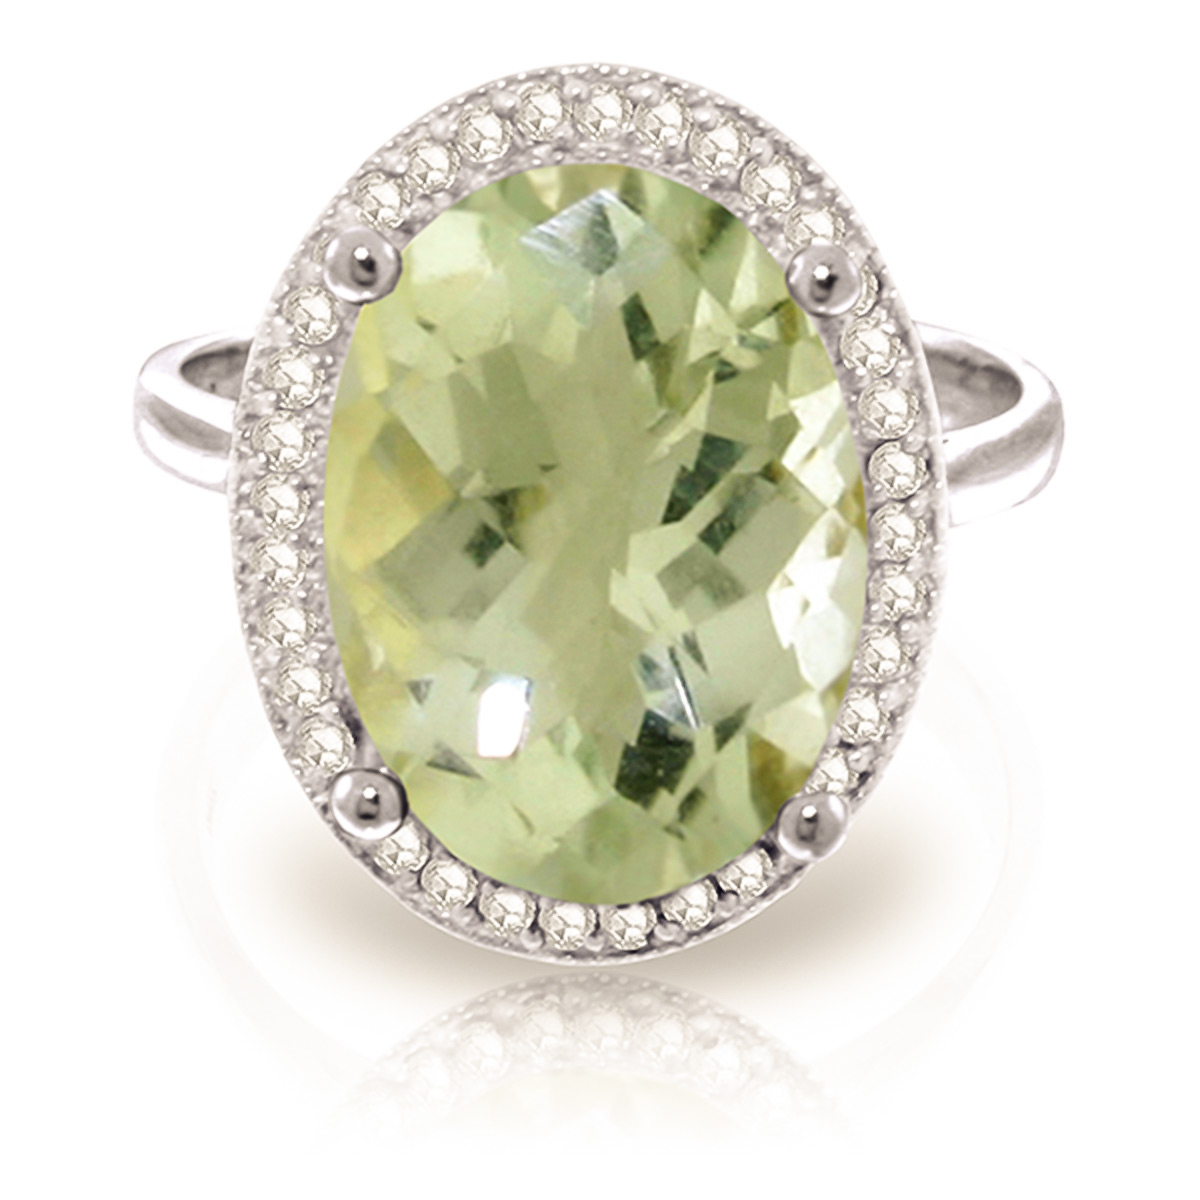 Green Amethyst and Diamond Halo Ring 5.1ct in 9ct White Gold